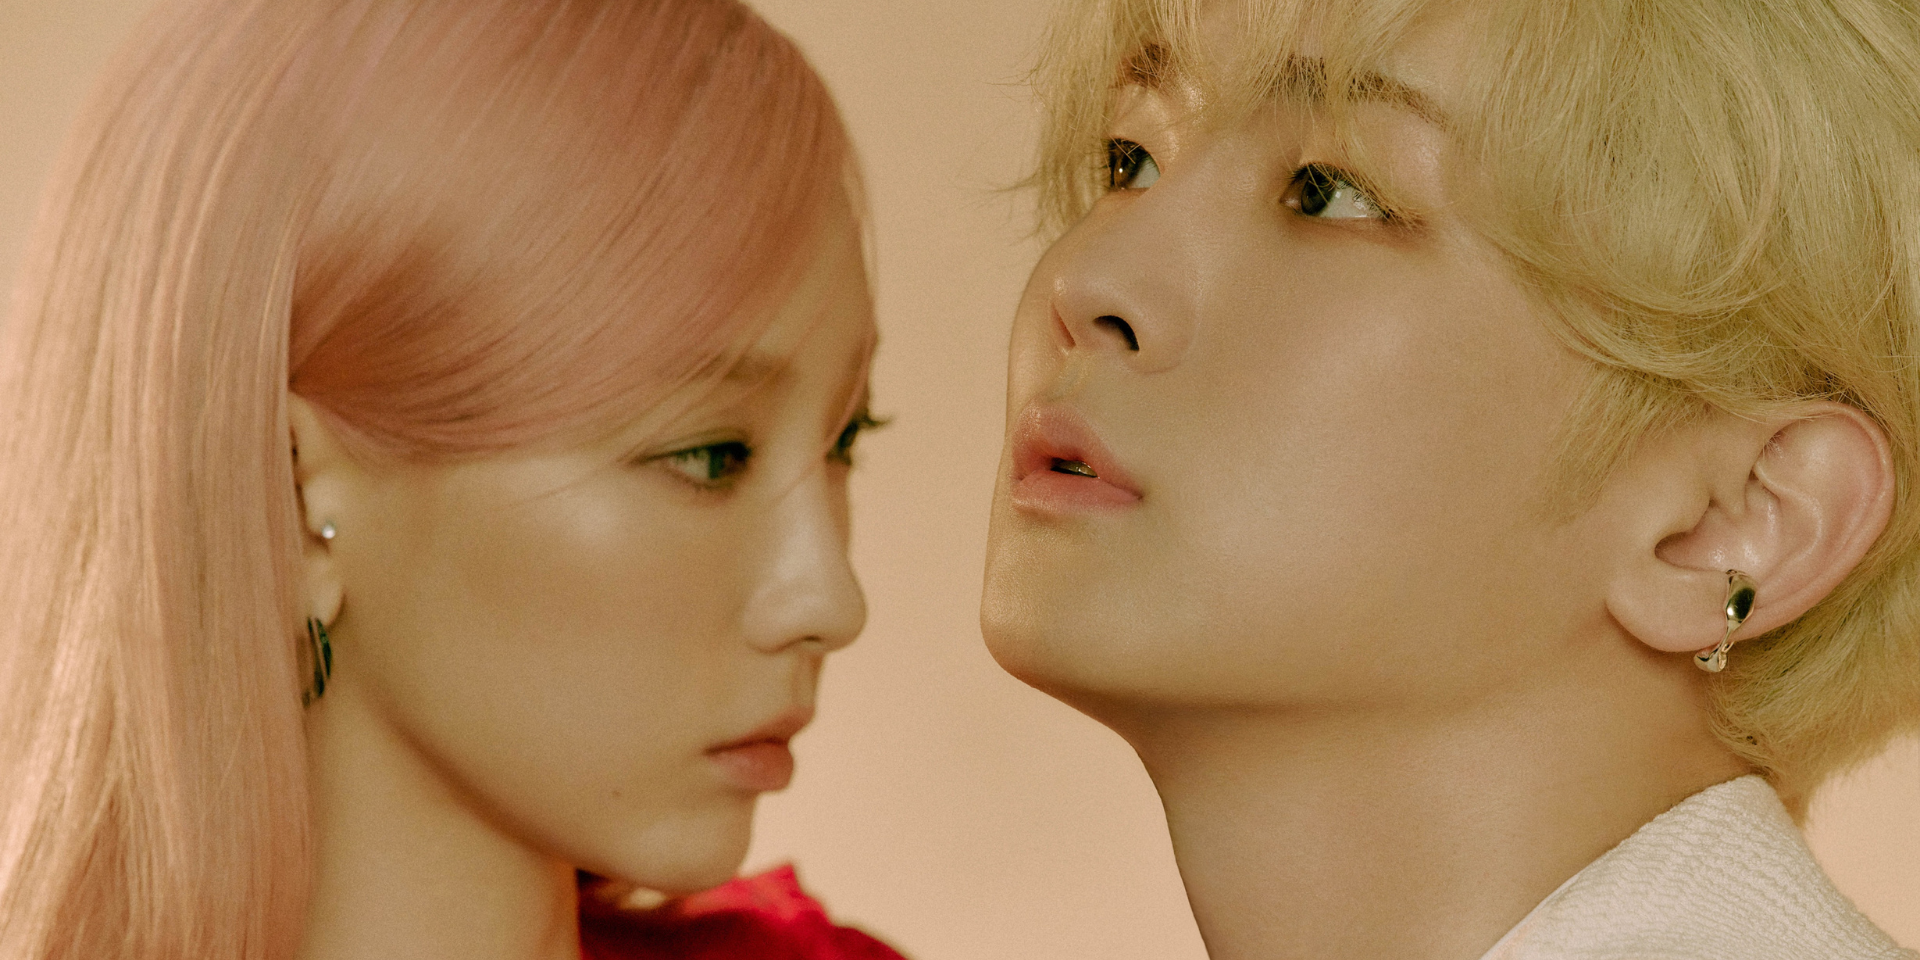 SHINee's Key and Taeyeon unveil collaborative track 'Hate that...' with music video - watch